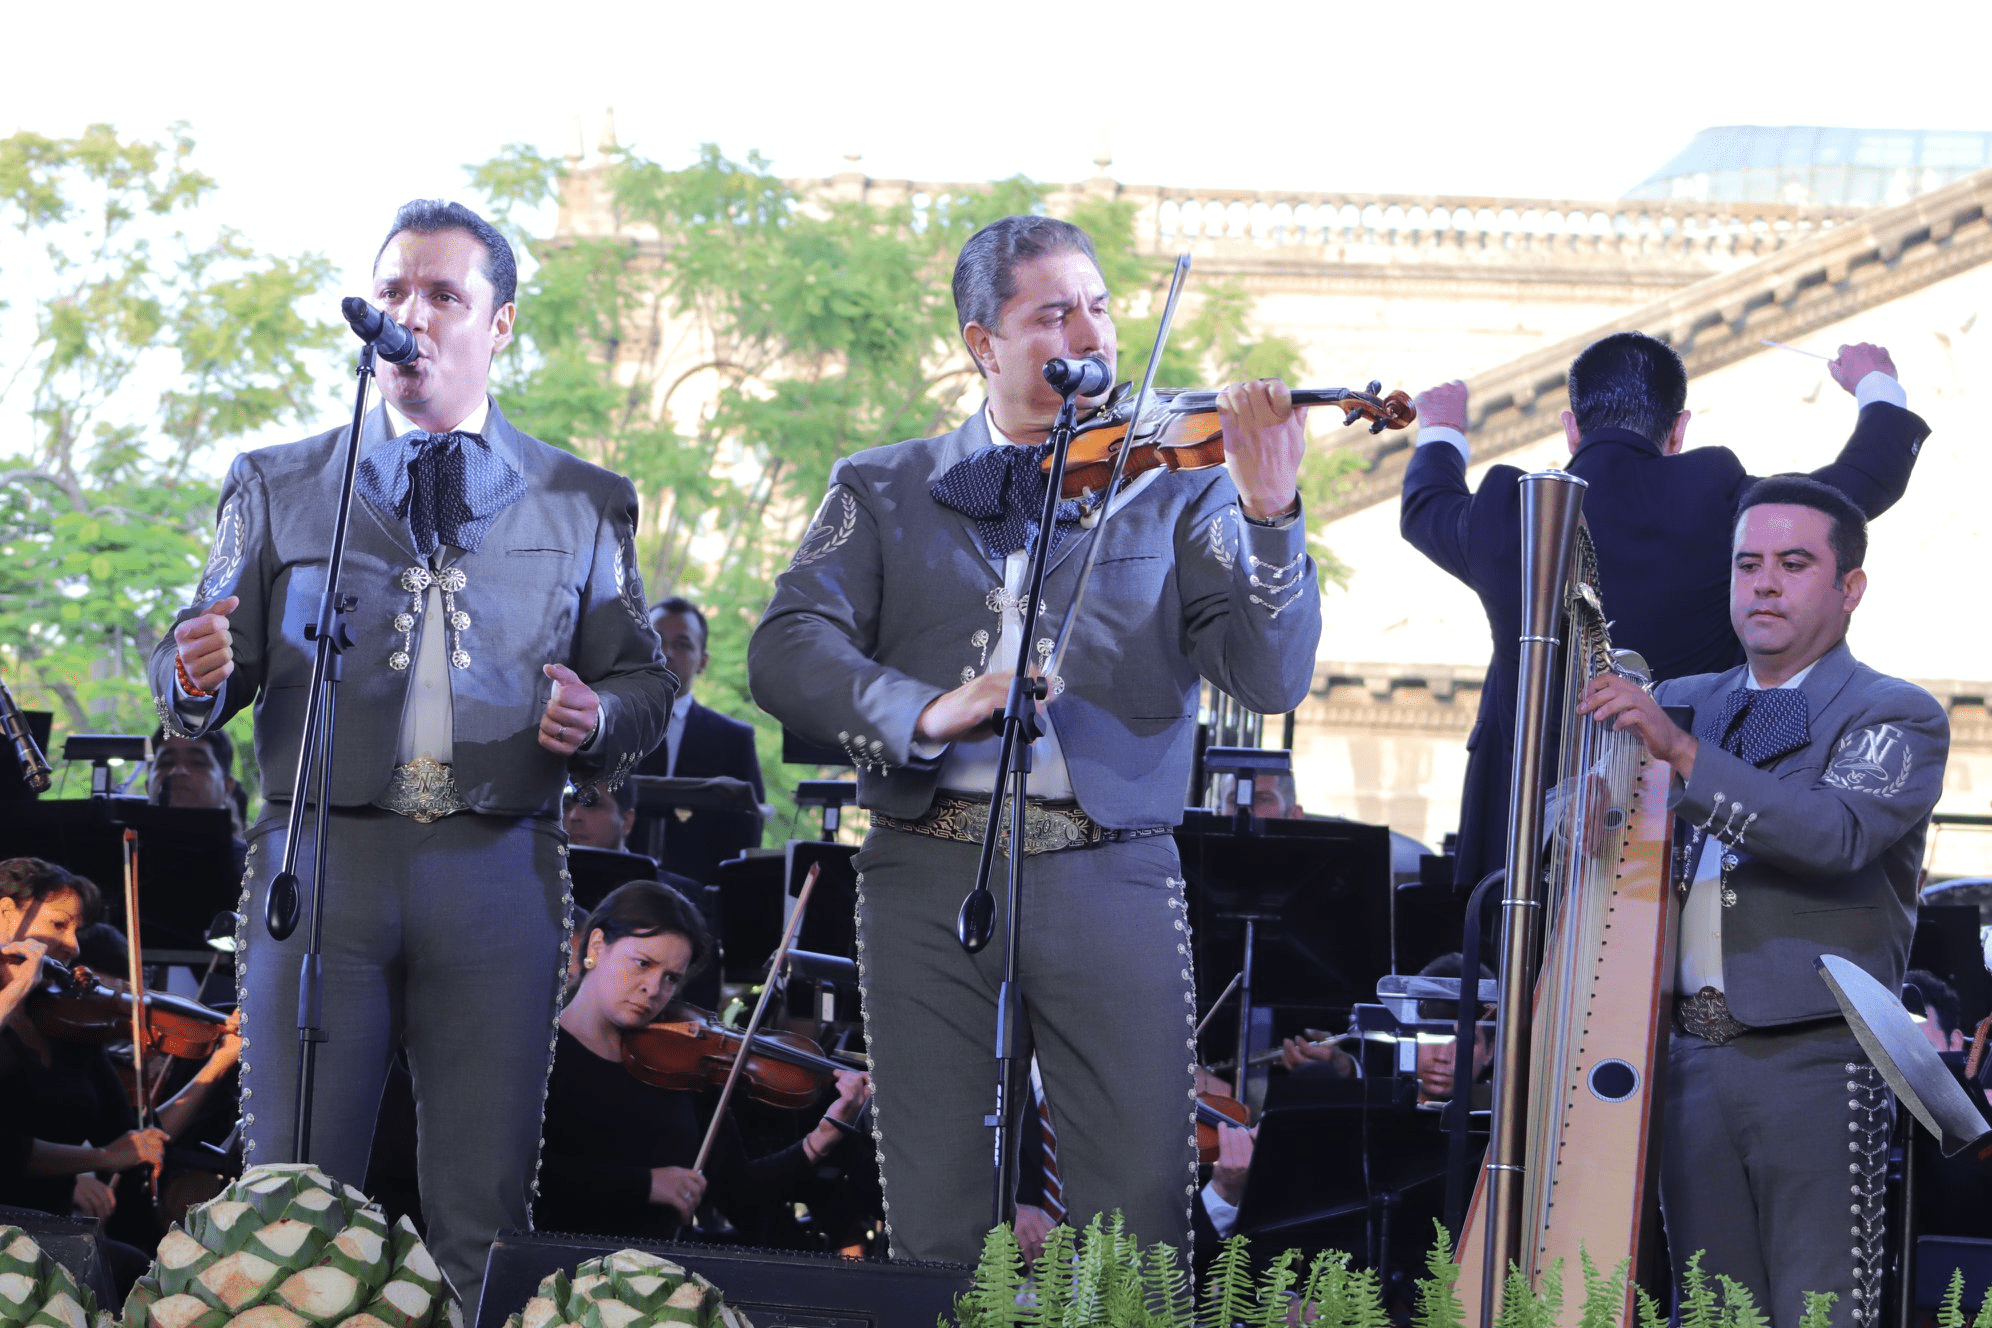 Three-piece mariachi band in grey suits performing on stage with string orchestra